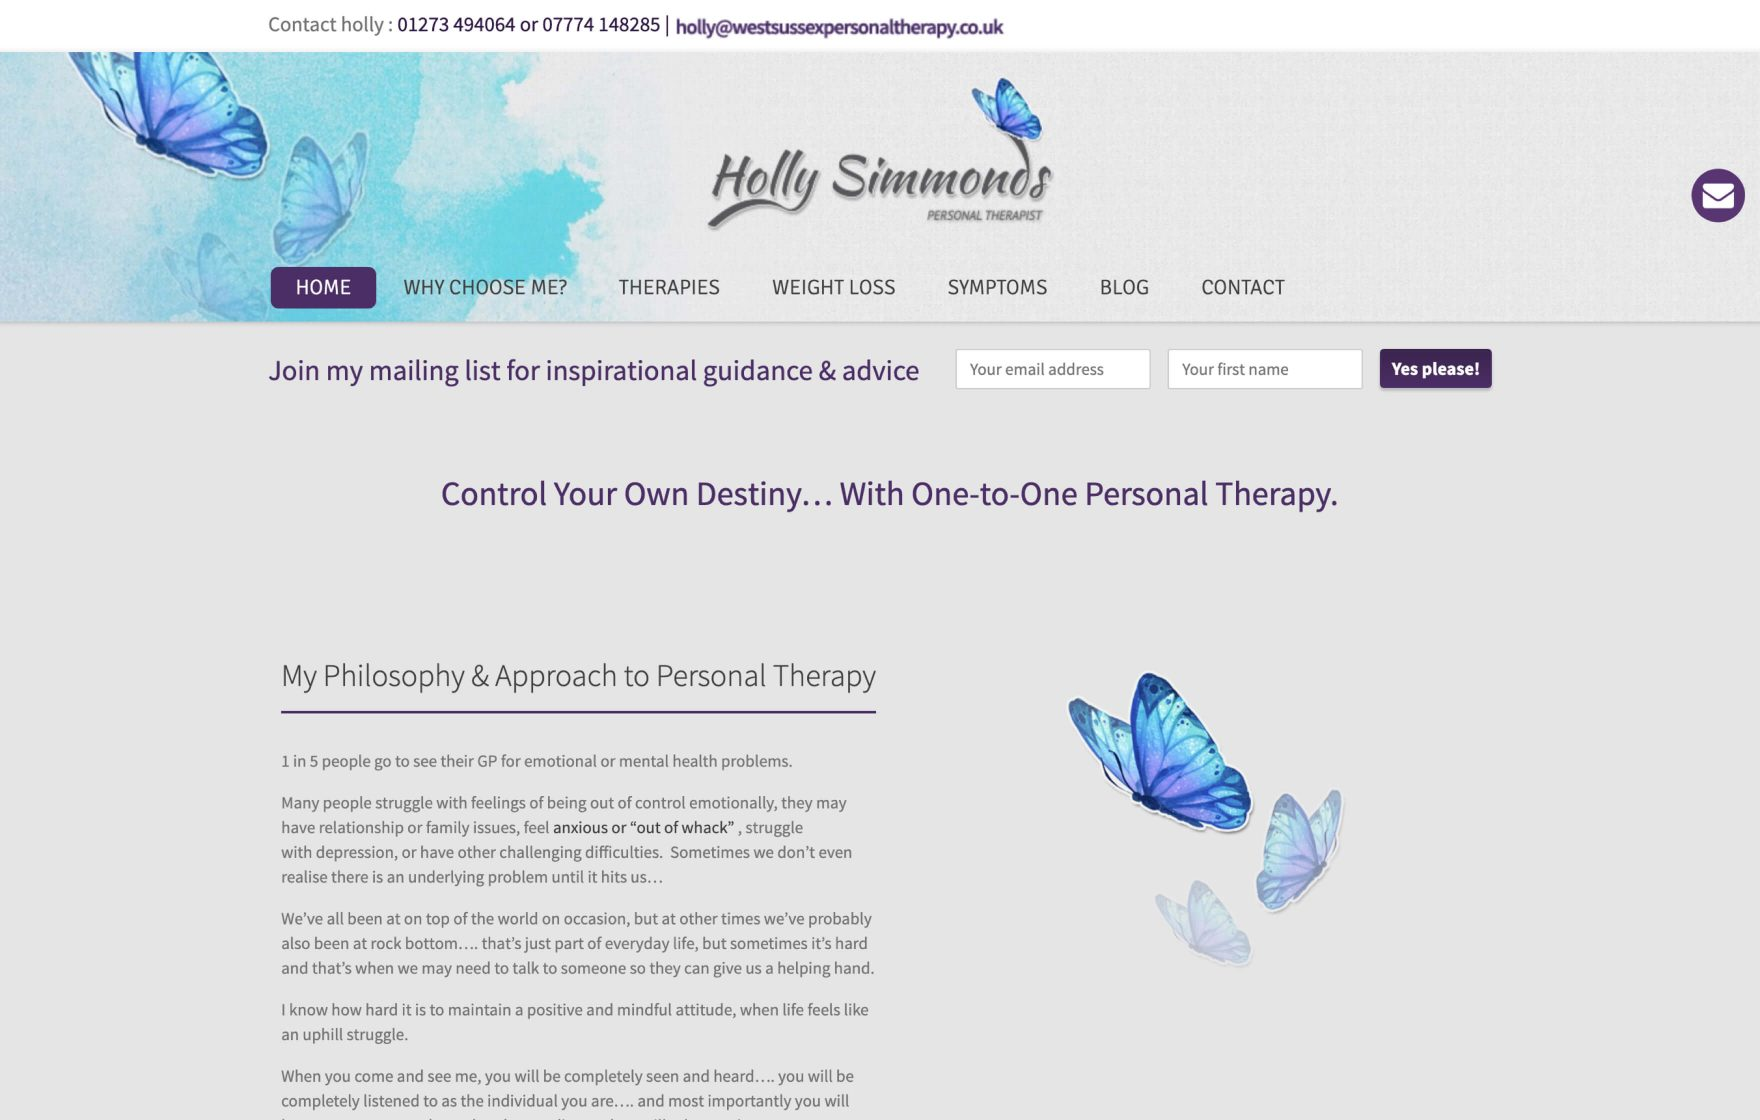 West Sussex Personal Therapy website © Jeremy Hickman